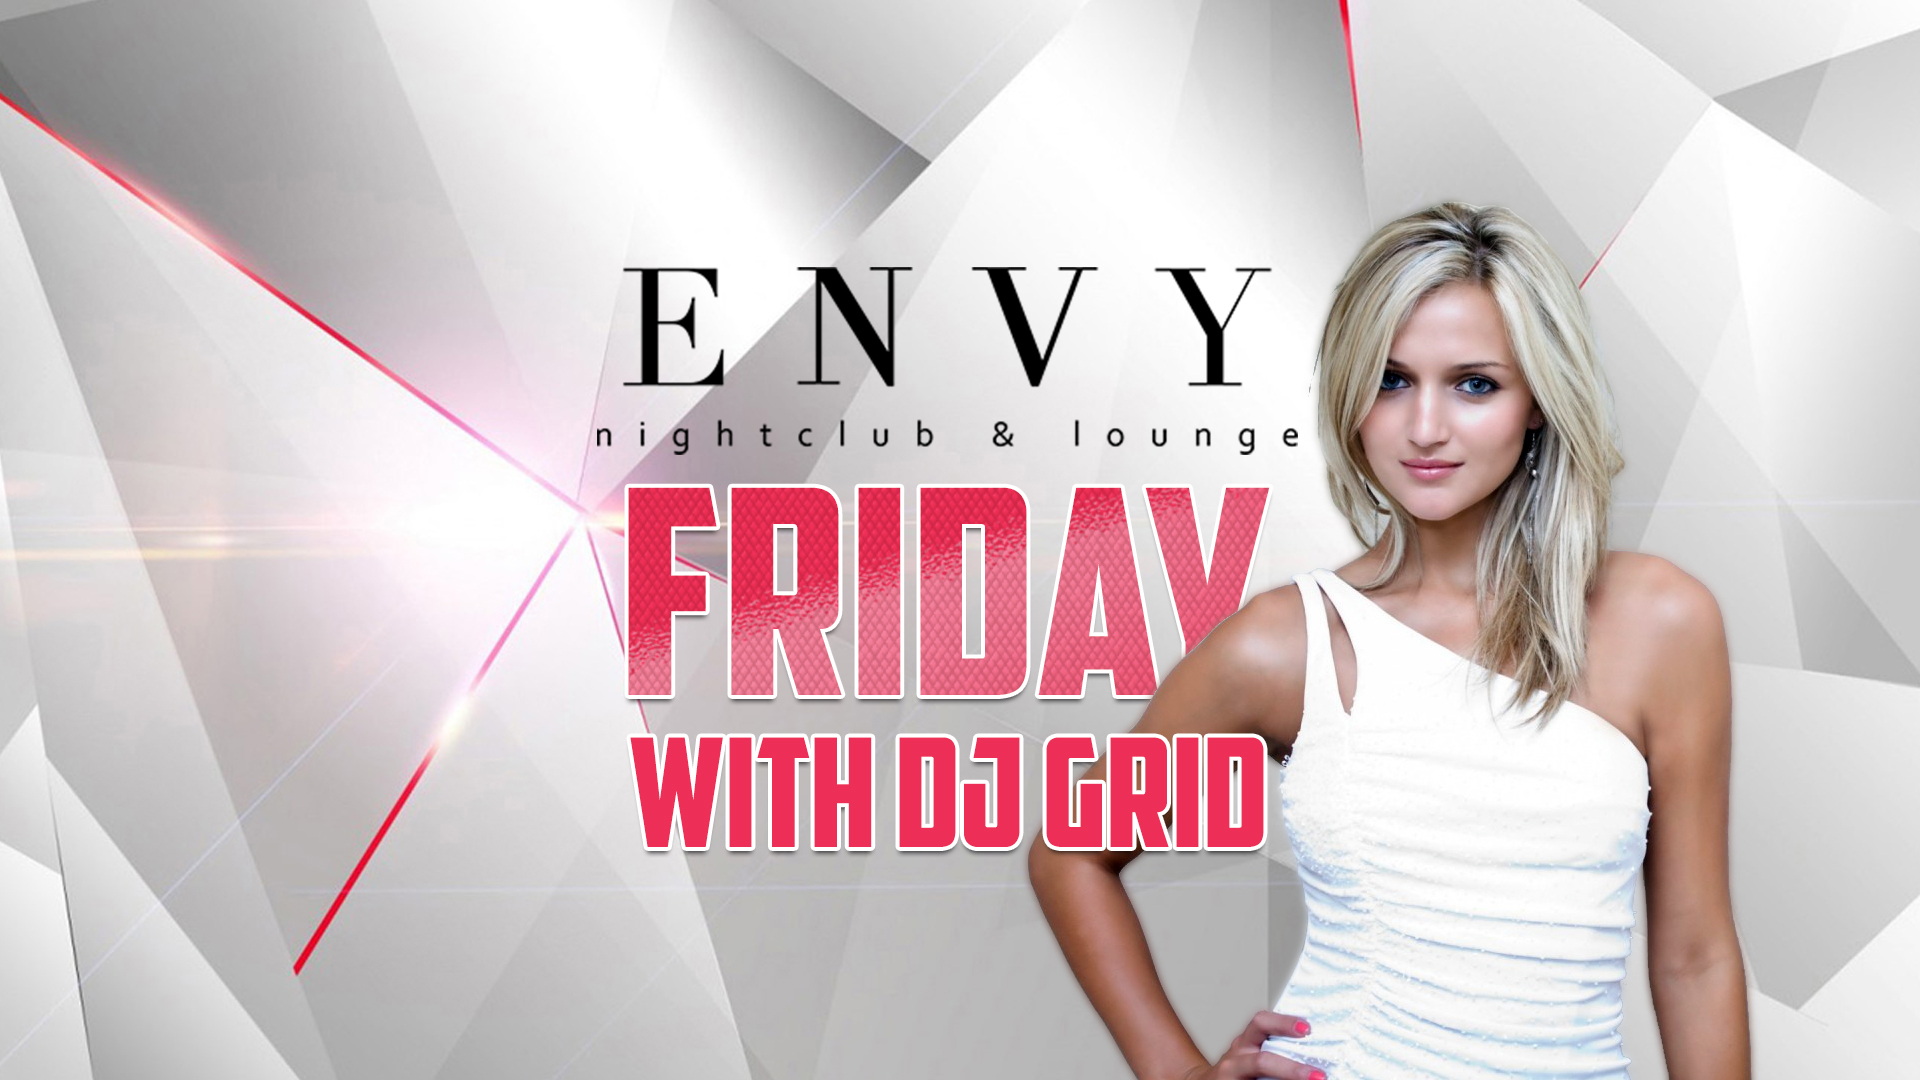 envy_friday_poster_generic_white